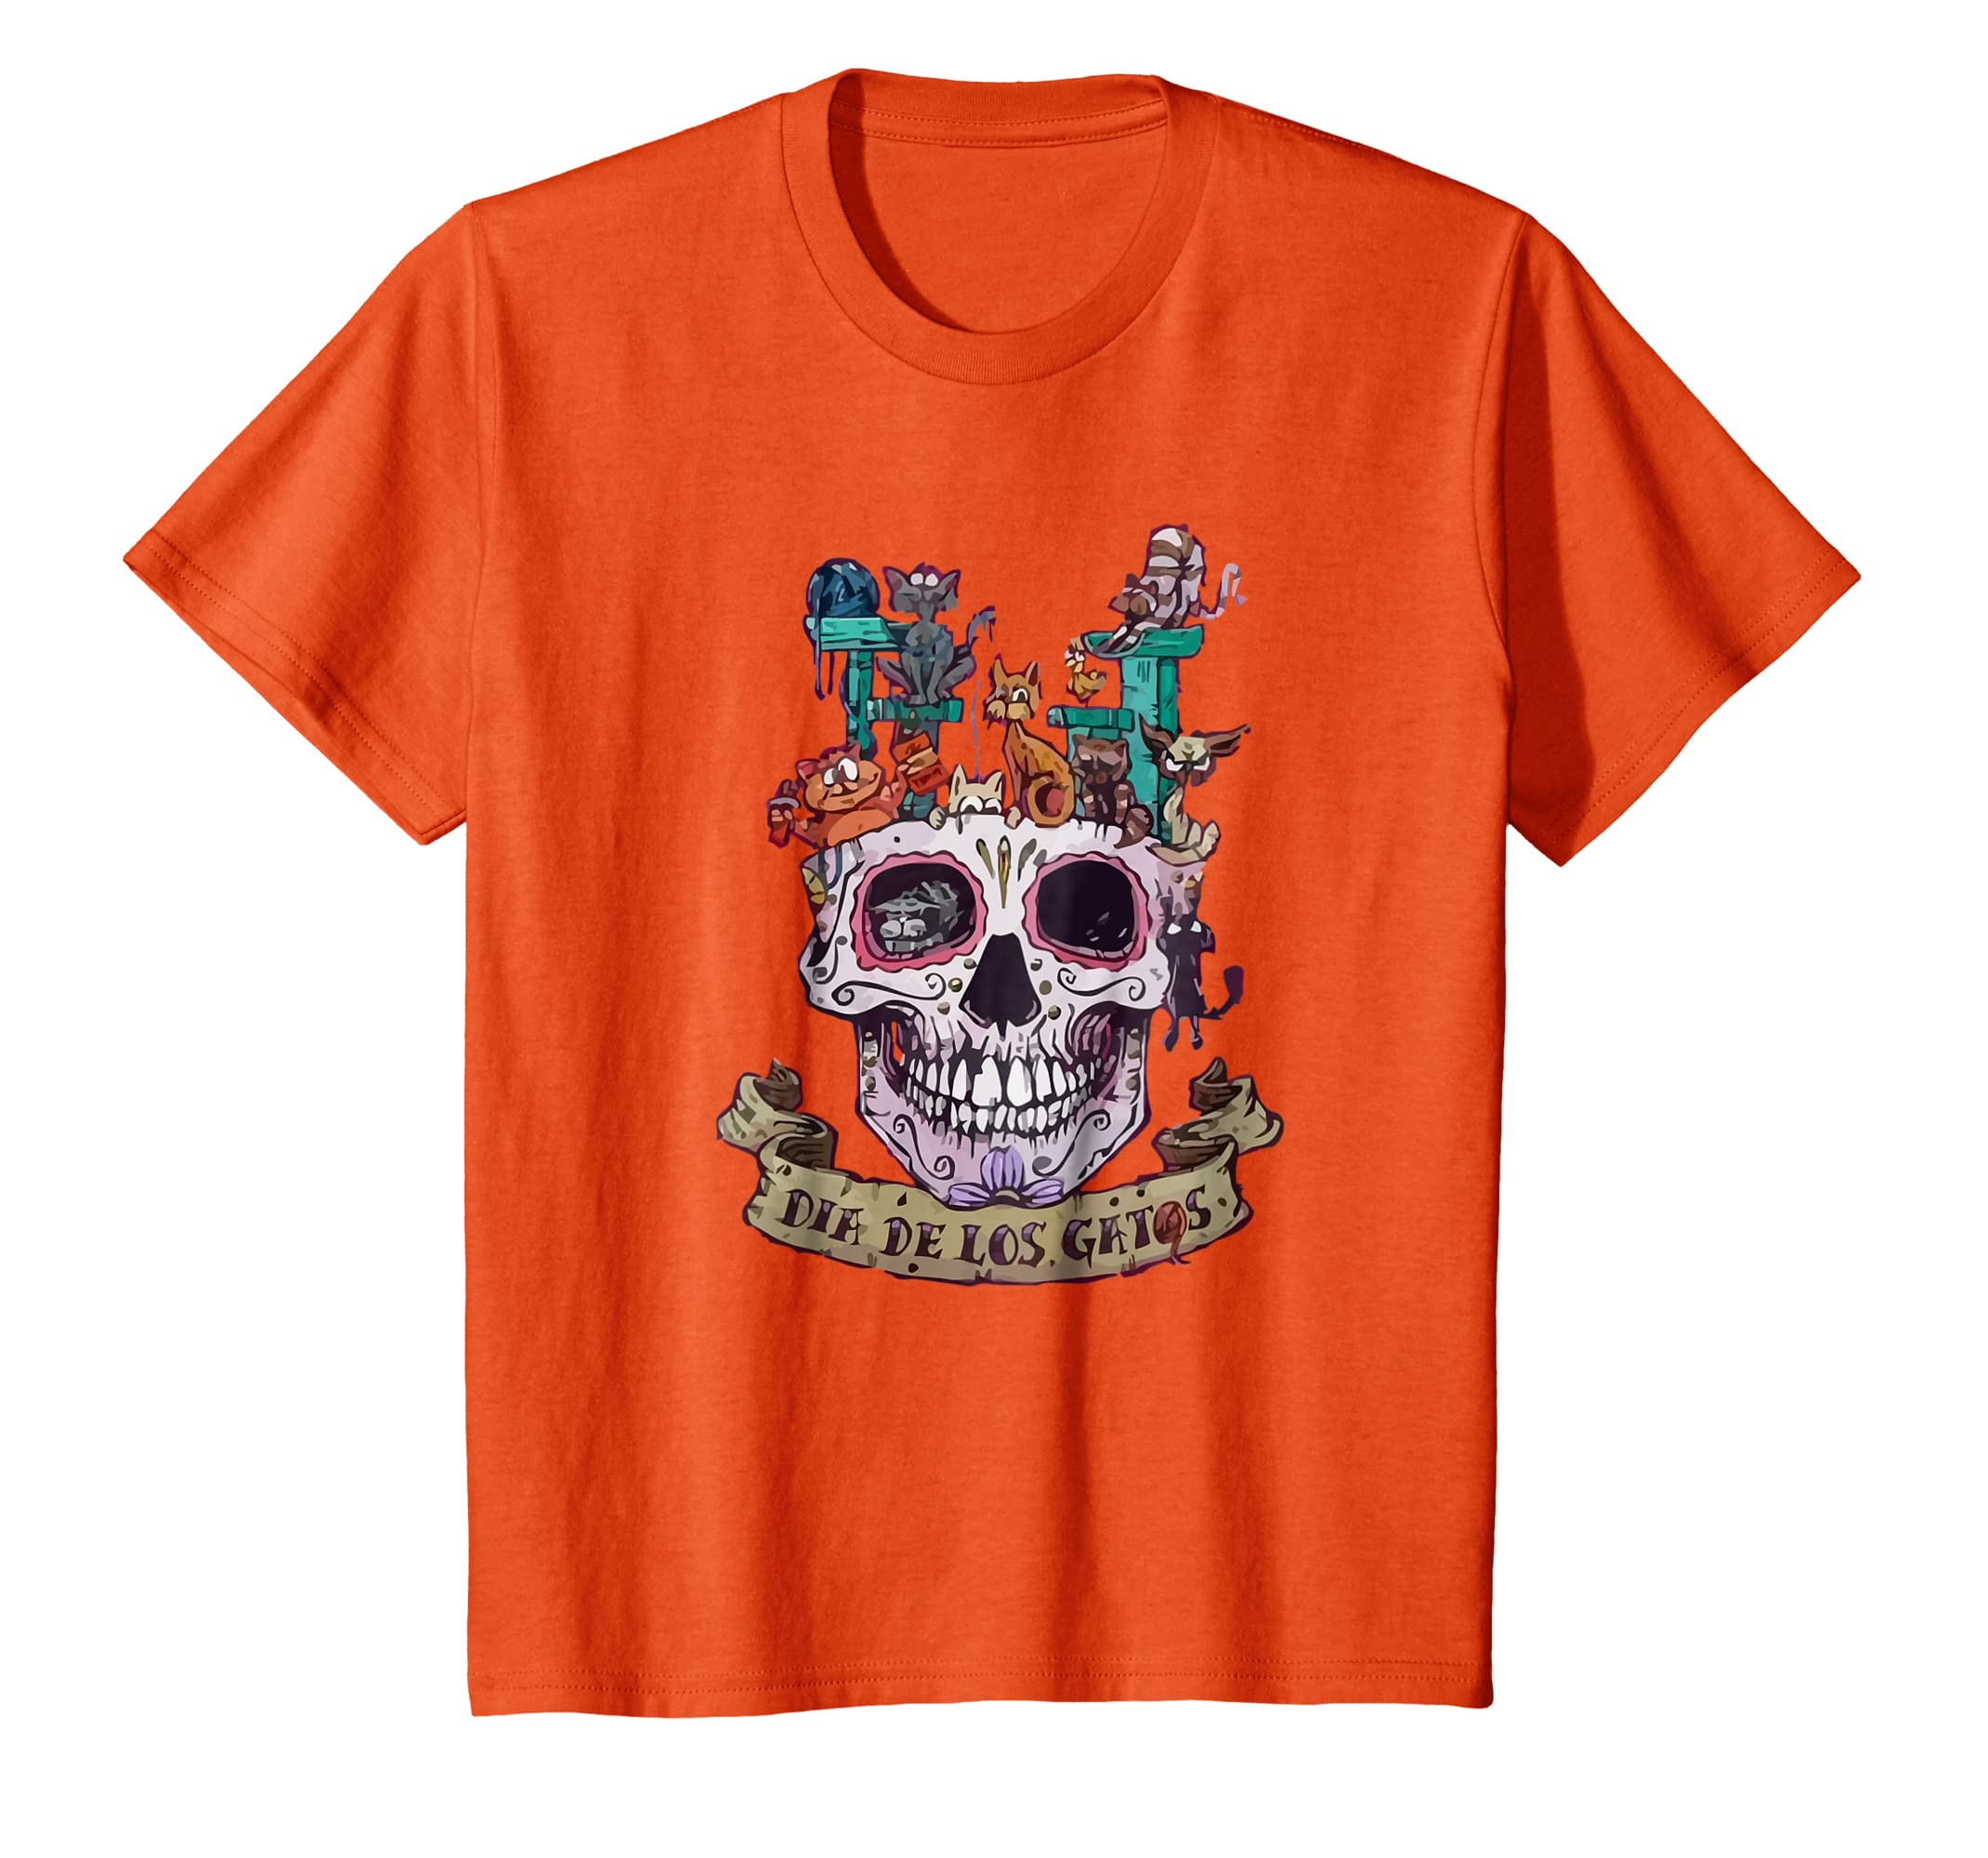 Amazon.com: Womens Day of the Dead Shirt Gato de Azucar Alegrije Shirt: Clothing